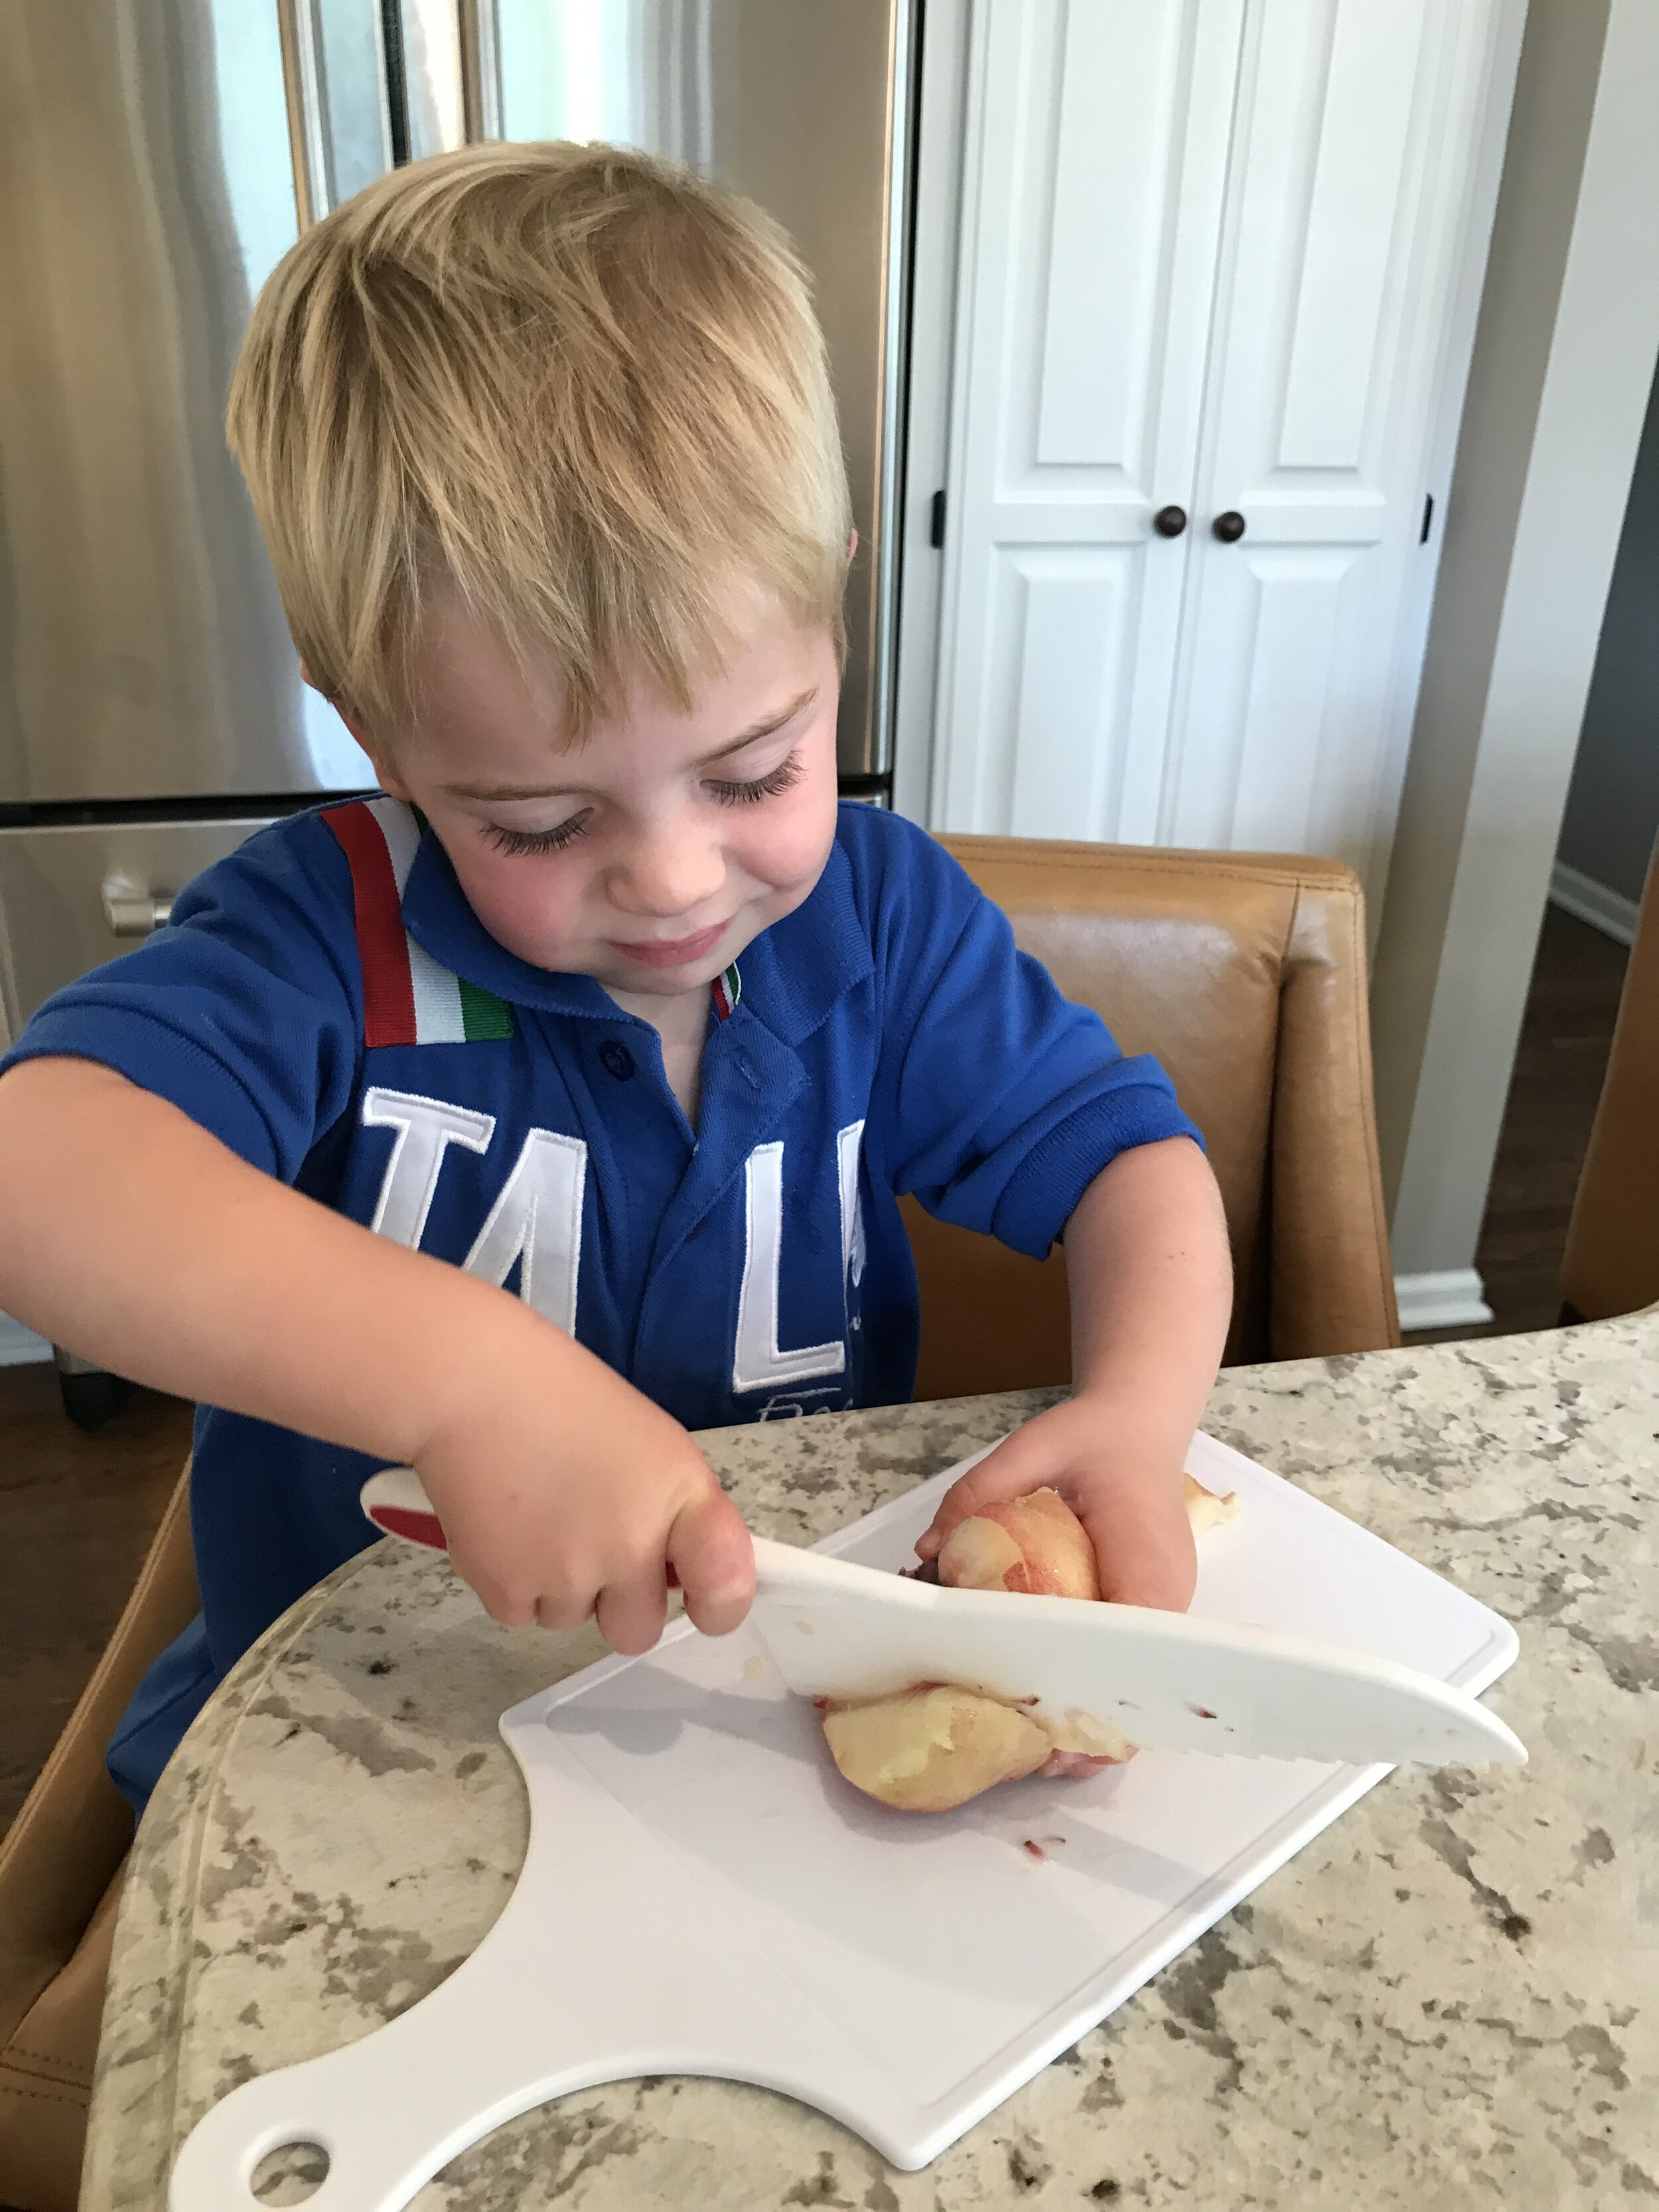 Being in the kitchen has become second nature for Will - he grabbed this nectarine off the counter, found his kids cutting board and knife and started cutting the nectarine so he could have a snack!!